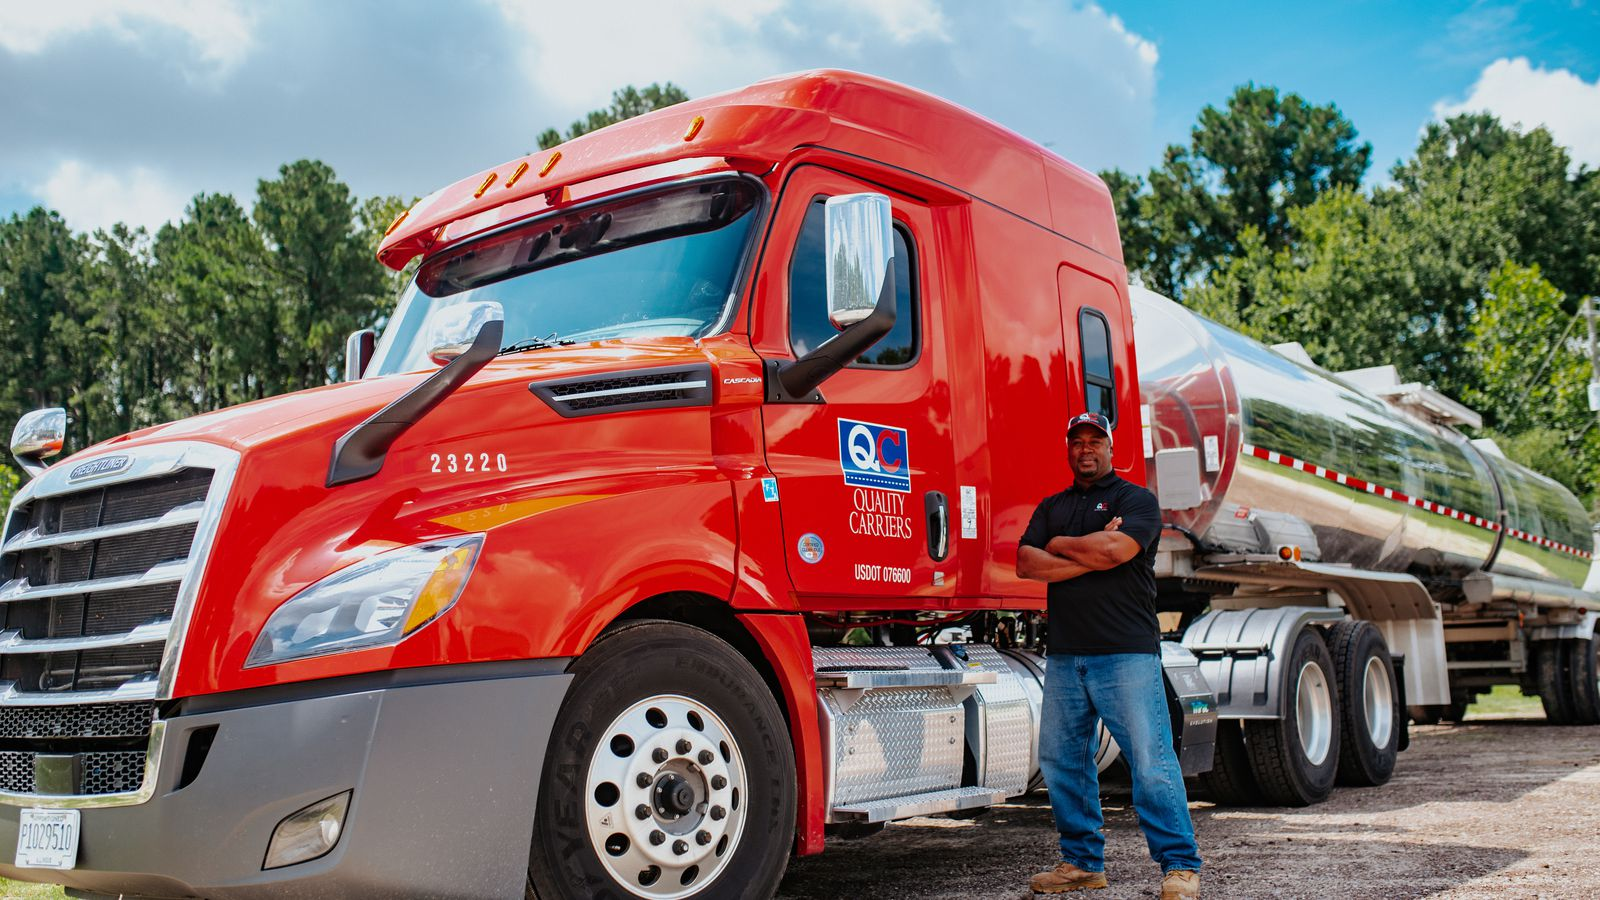 Tampa's Quality Carriers is being sold to the CSX Corp., creating a sprawling new multimodal liquid chemical shipping network.